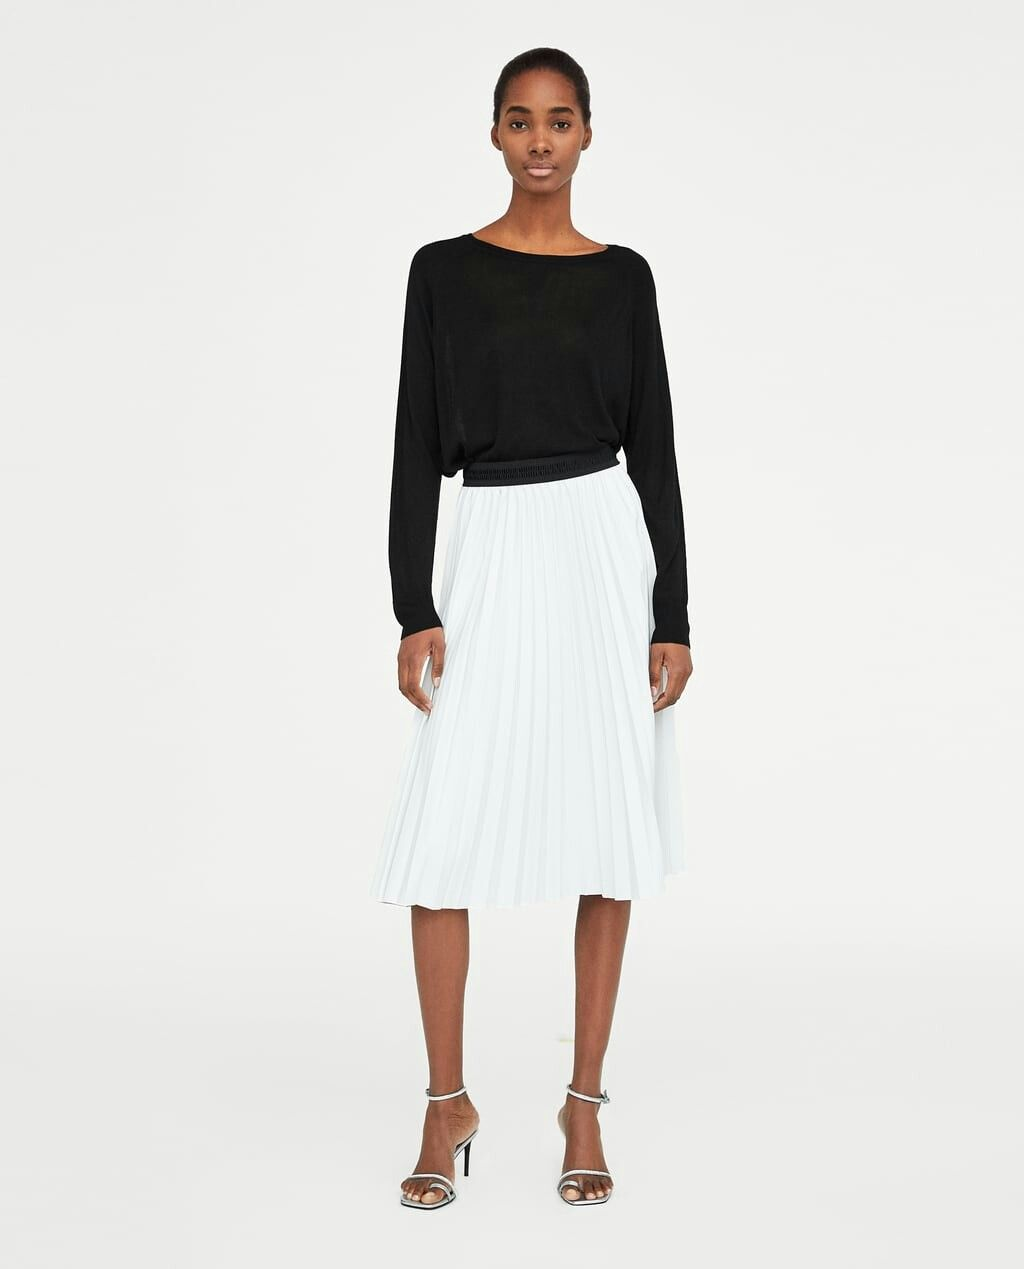 Zara faux leather white pleated skirt